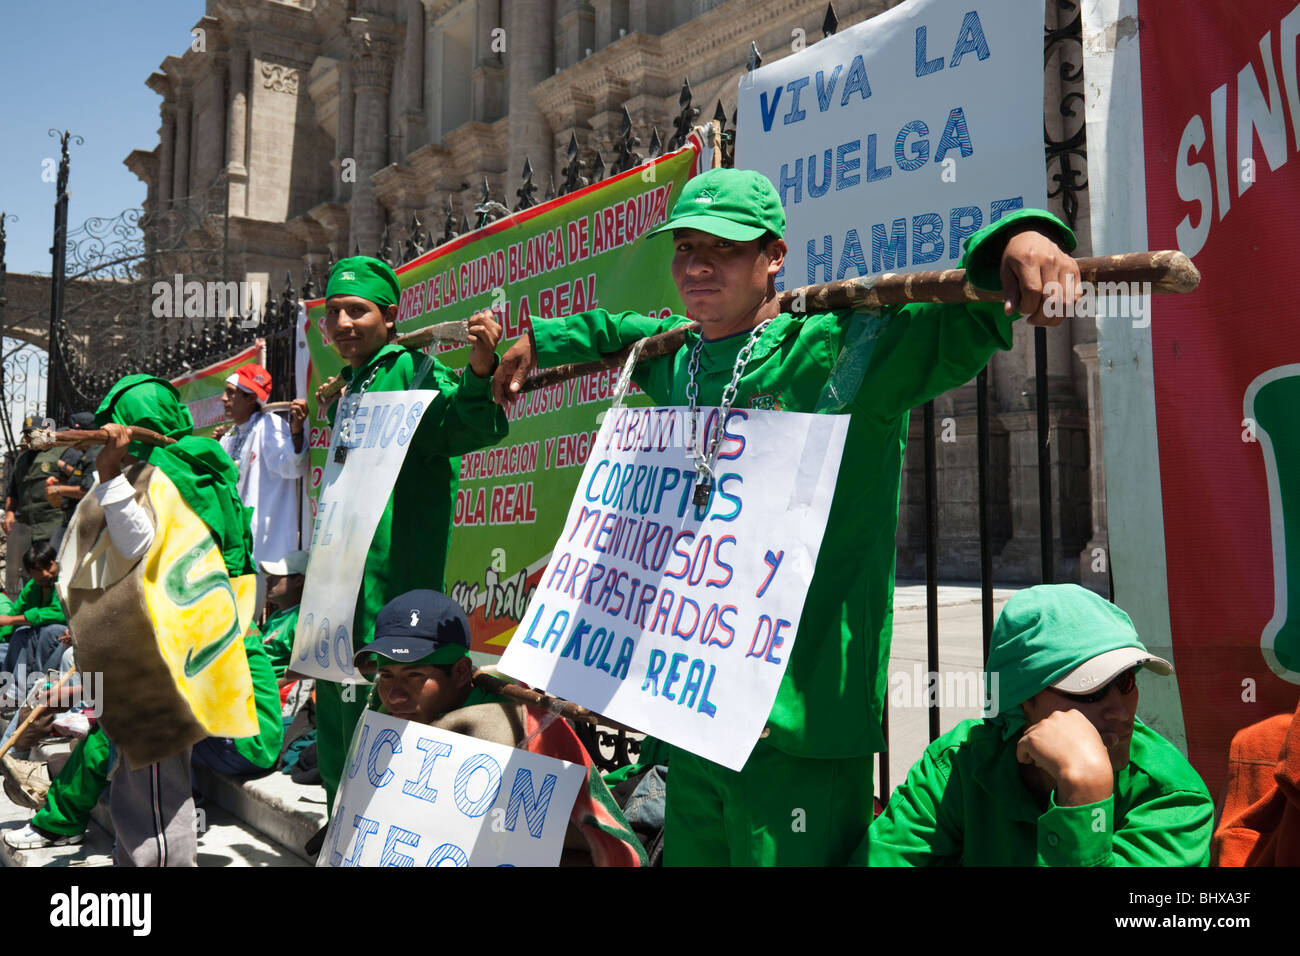 Men in Hunger strike over working conditions in Plaza de Armas, Arequipa, Peru, South America - Stock Image